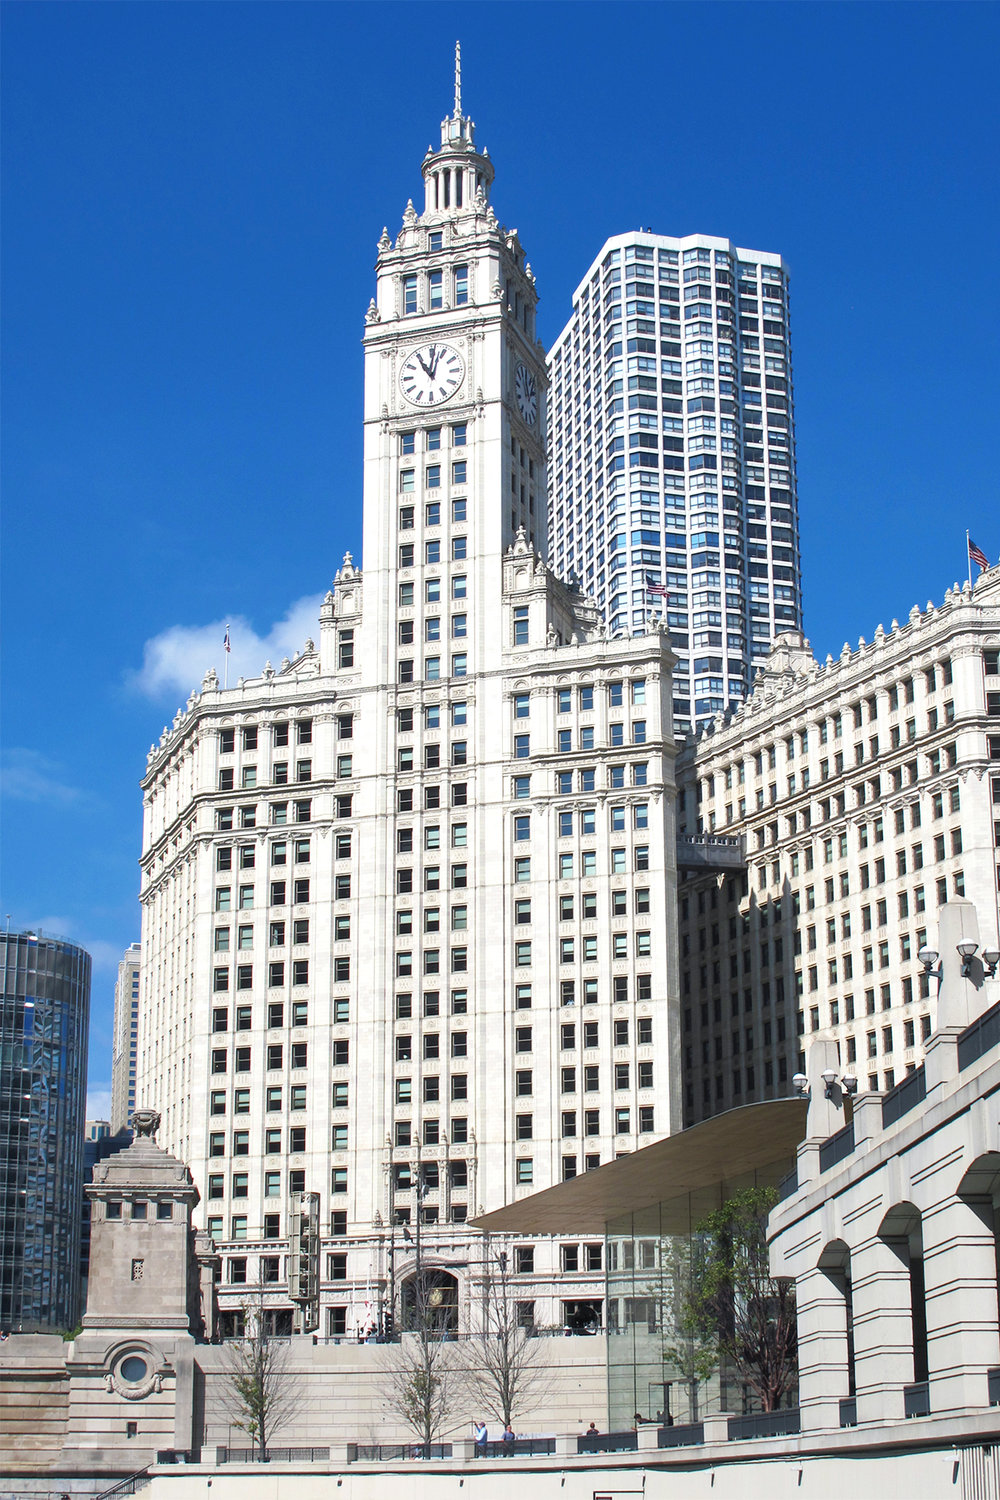 The Wrigley Building, 1924, Architect: Graham, Anderson, Probst & White